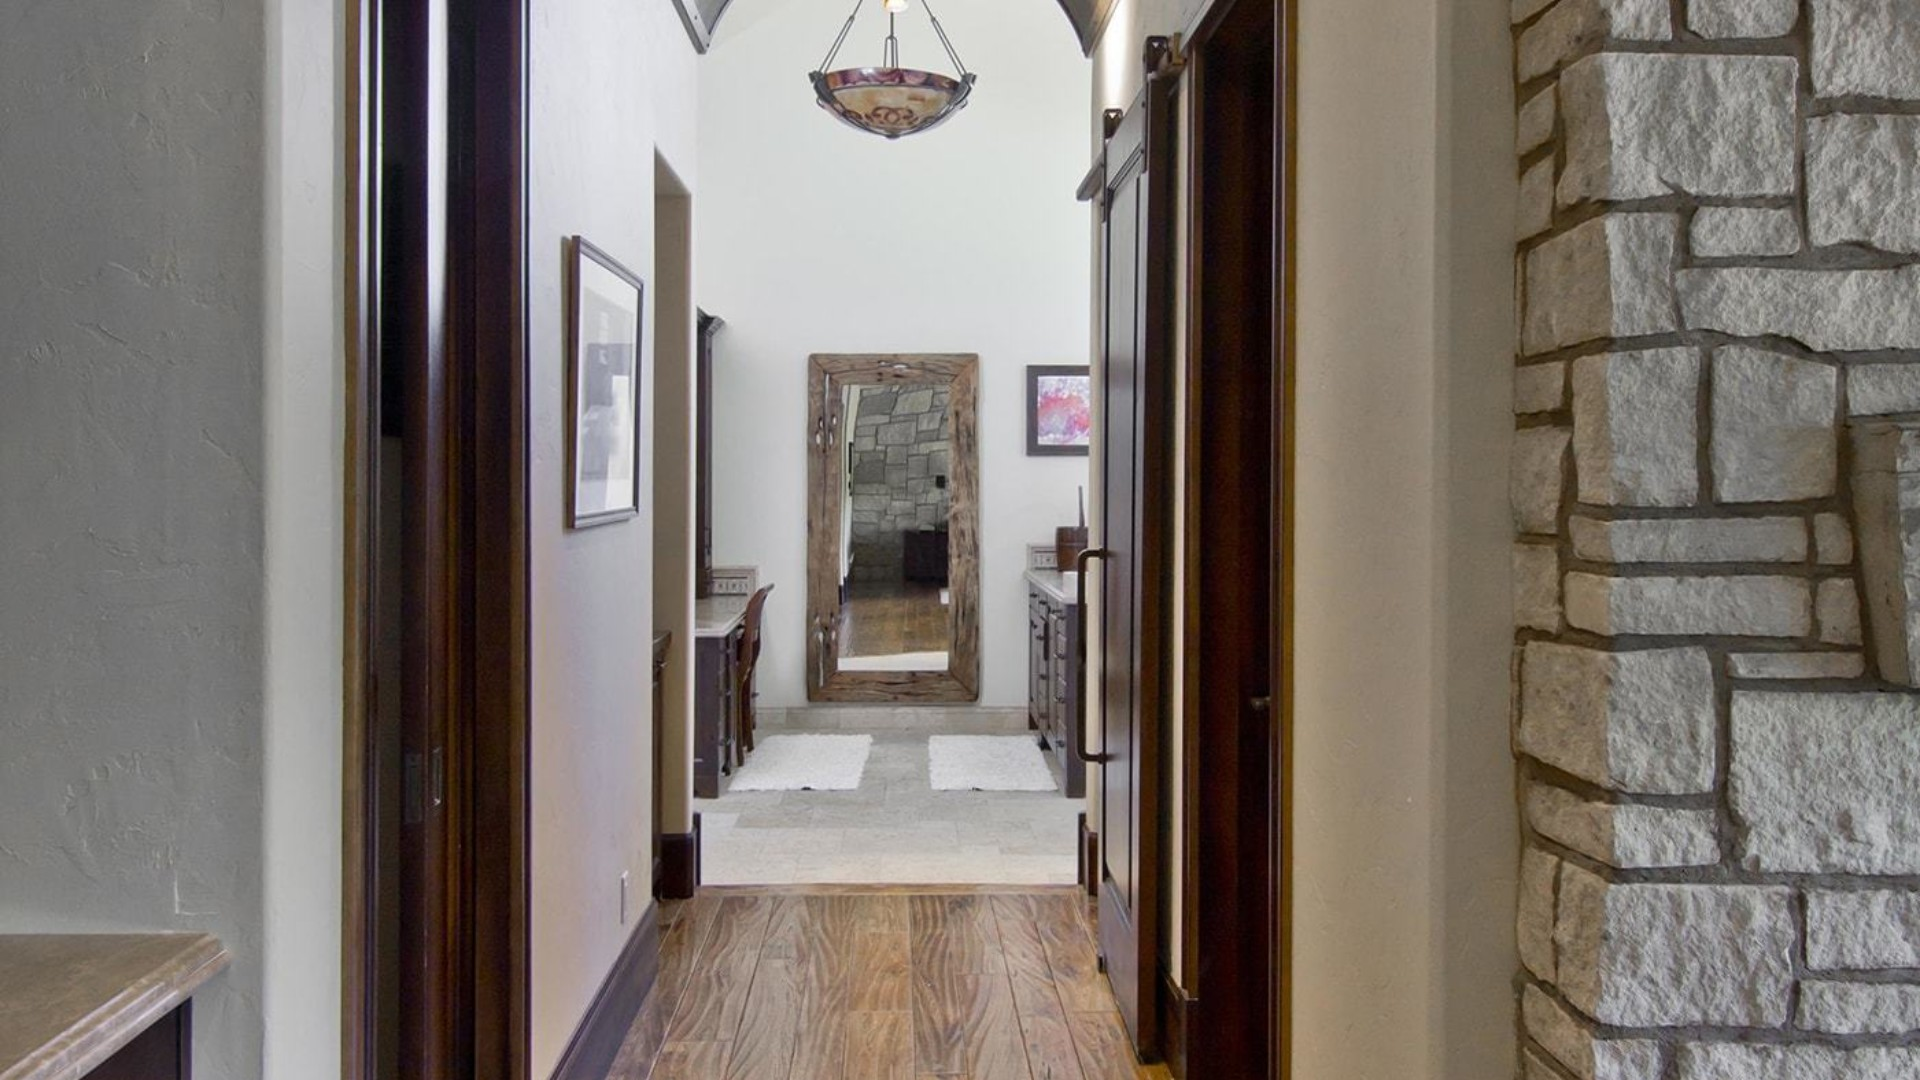 mansion hallway toward some bedrooms